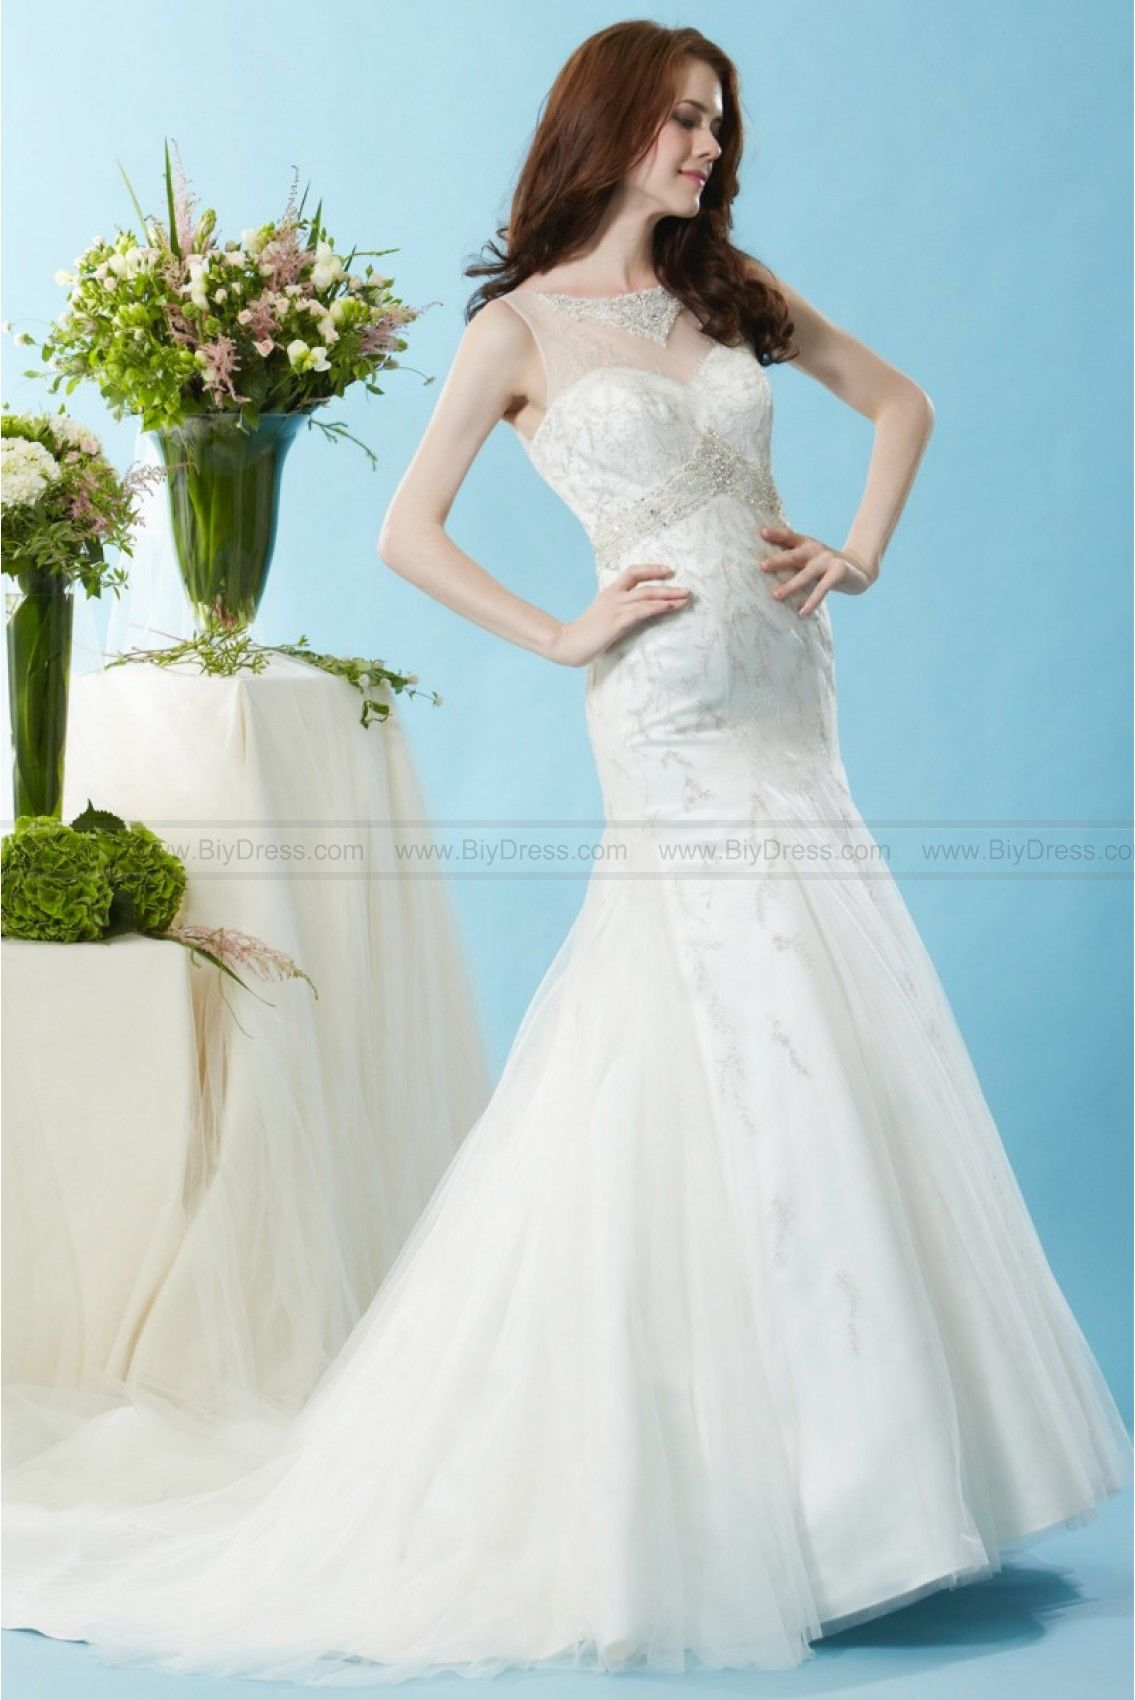 Colorful Wedding Dress Tumblr Ensign - All Wedding Dresses ...